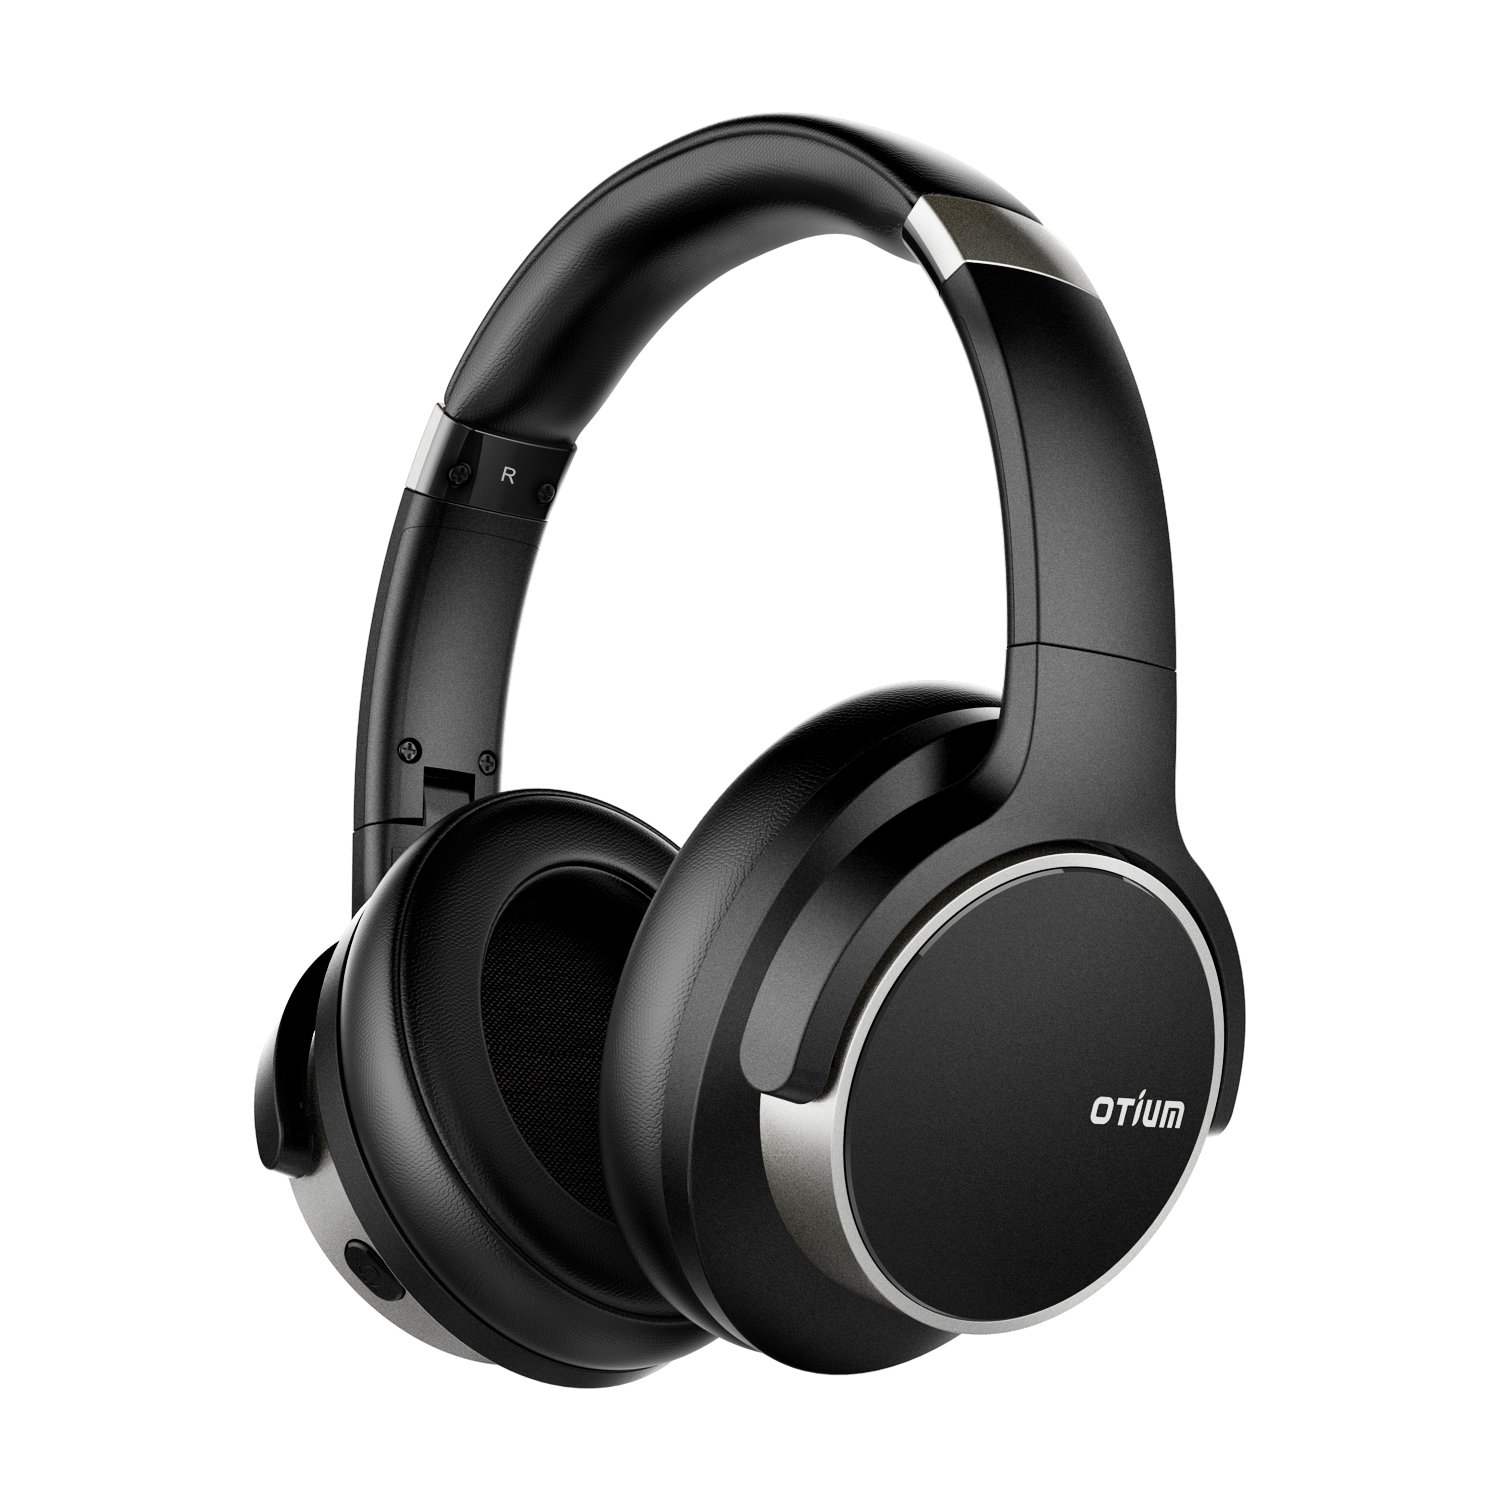 Otium Noise Cancelling Headphones,  Wireless Headphones Over Ear Bluetooth Headphones with Mic Deep Bass, Foldable Comfortable Earpads 30H Playtime for Travel/Work/TV/Computer/Cellphone by Otium